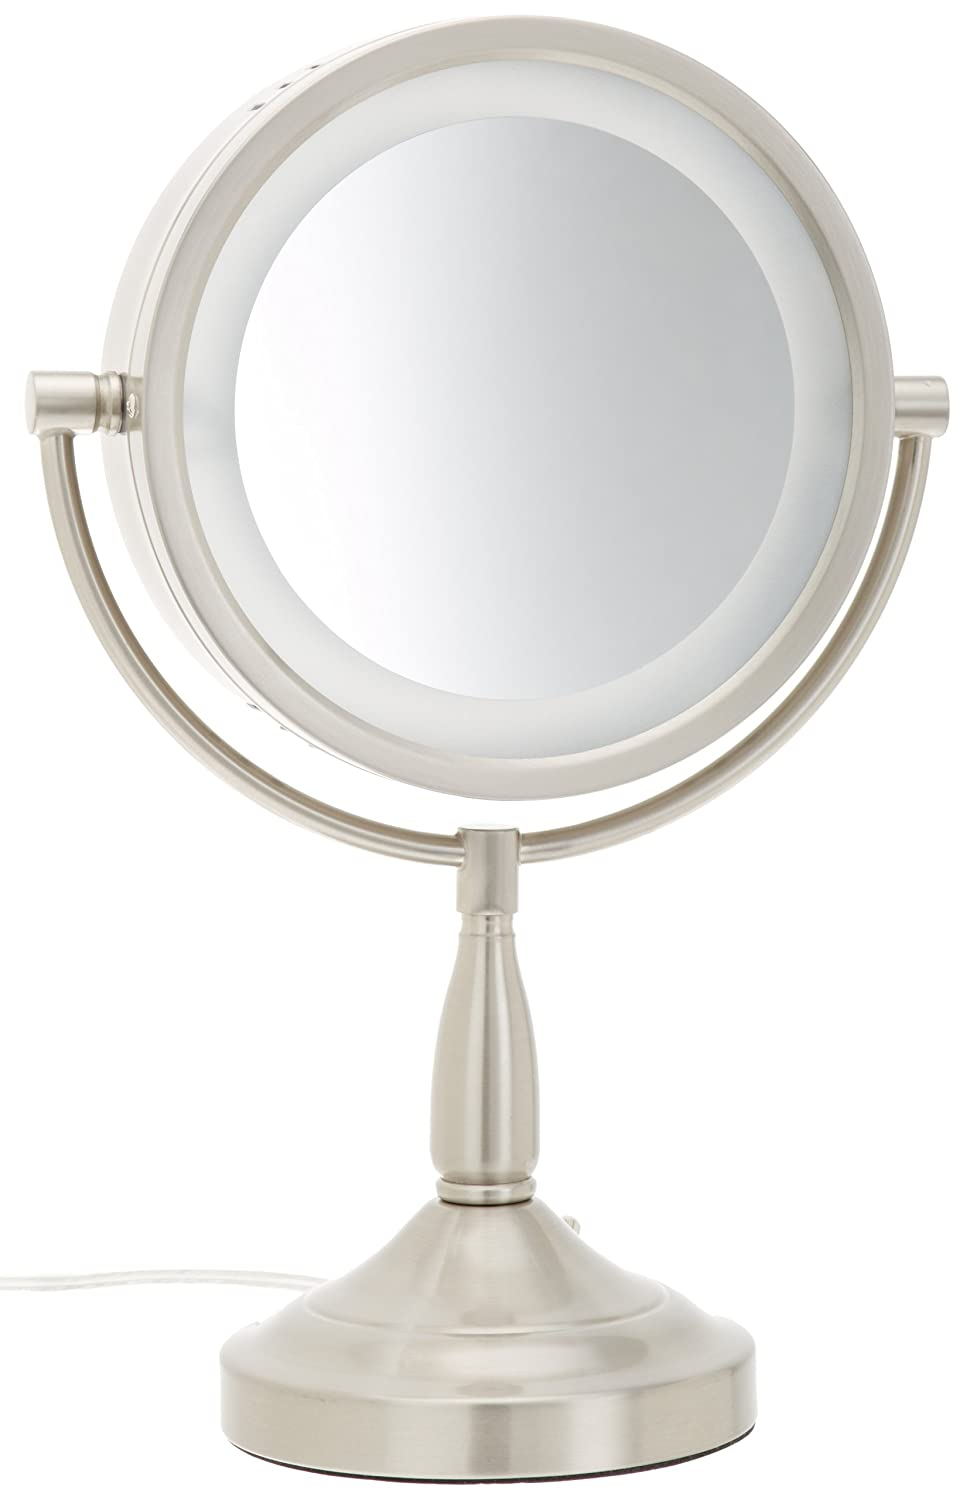 Amazon.com : Jerdon LT856N 8.5 Inch Lighted Vanity Mirror With 7x  Magnification, Nickel Finish : Personal Makeup Mirrors : Beauty